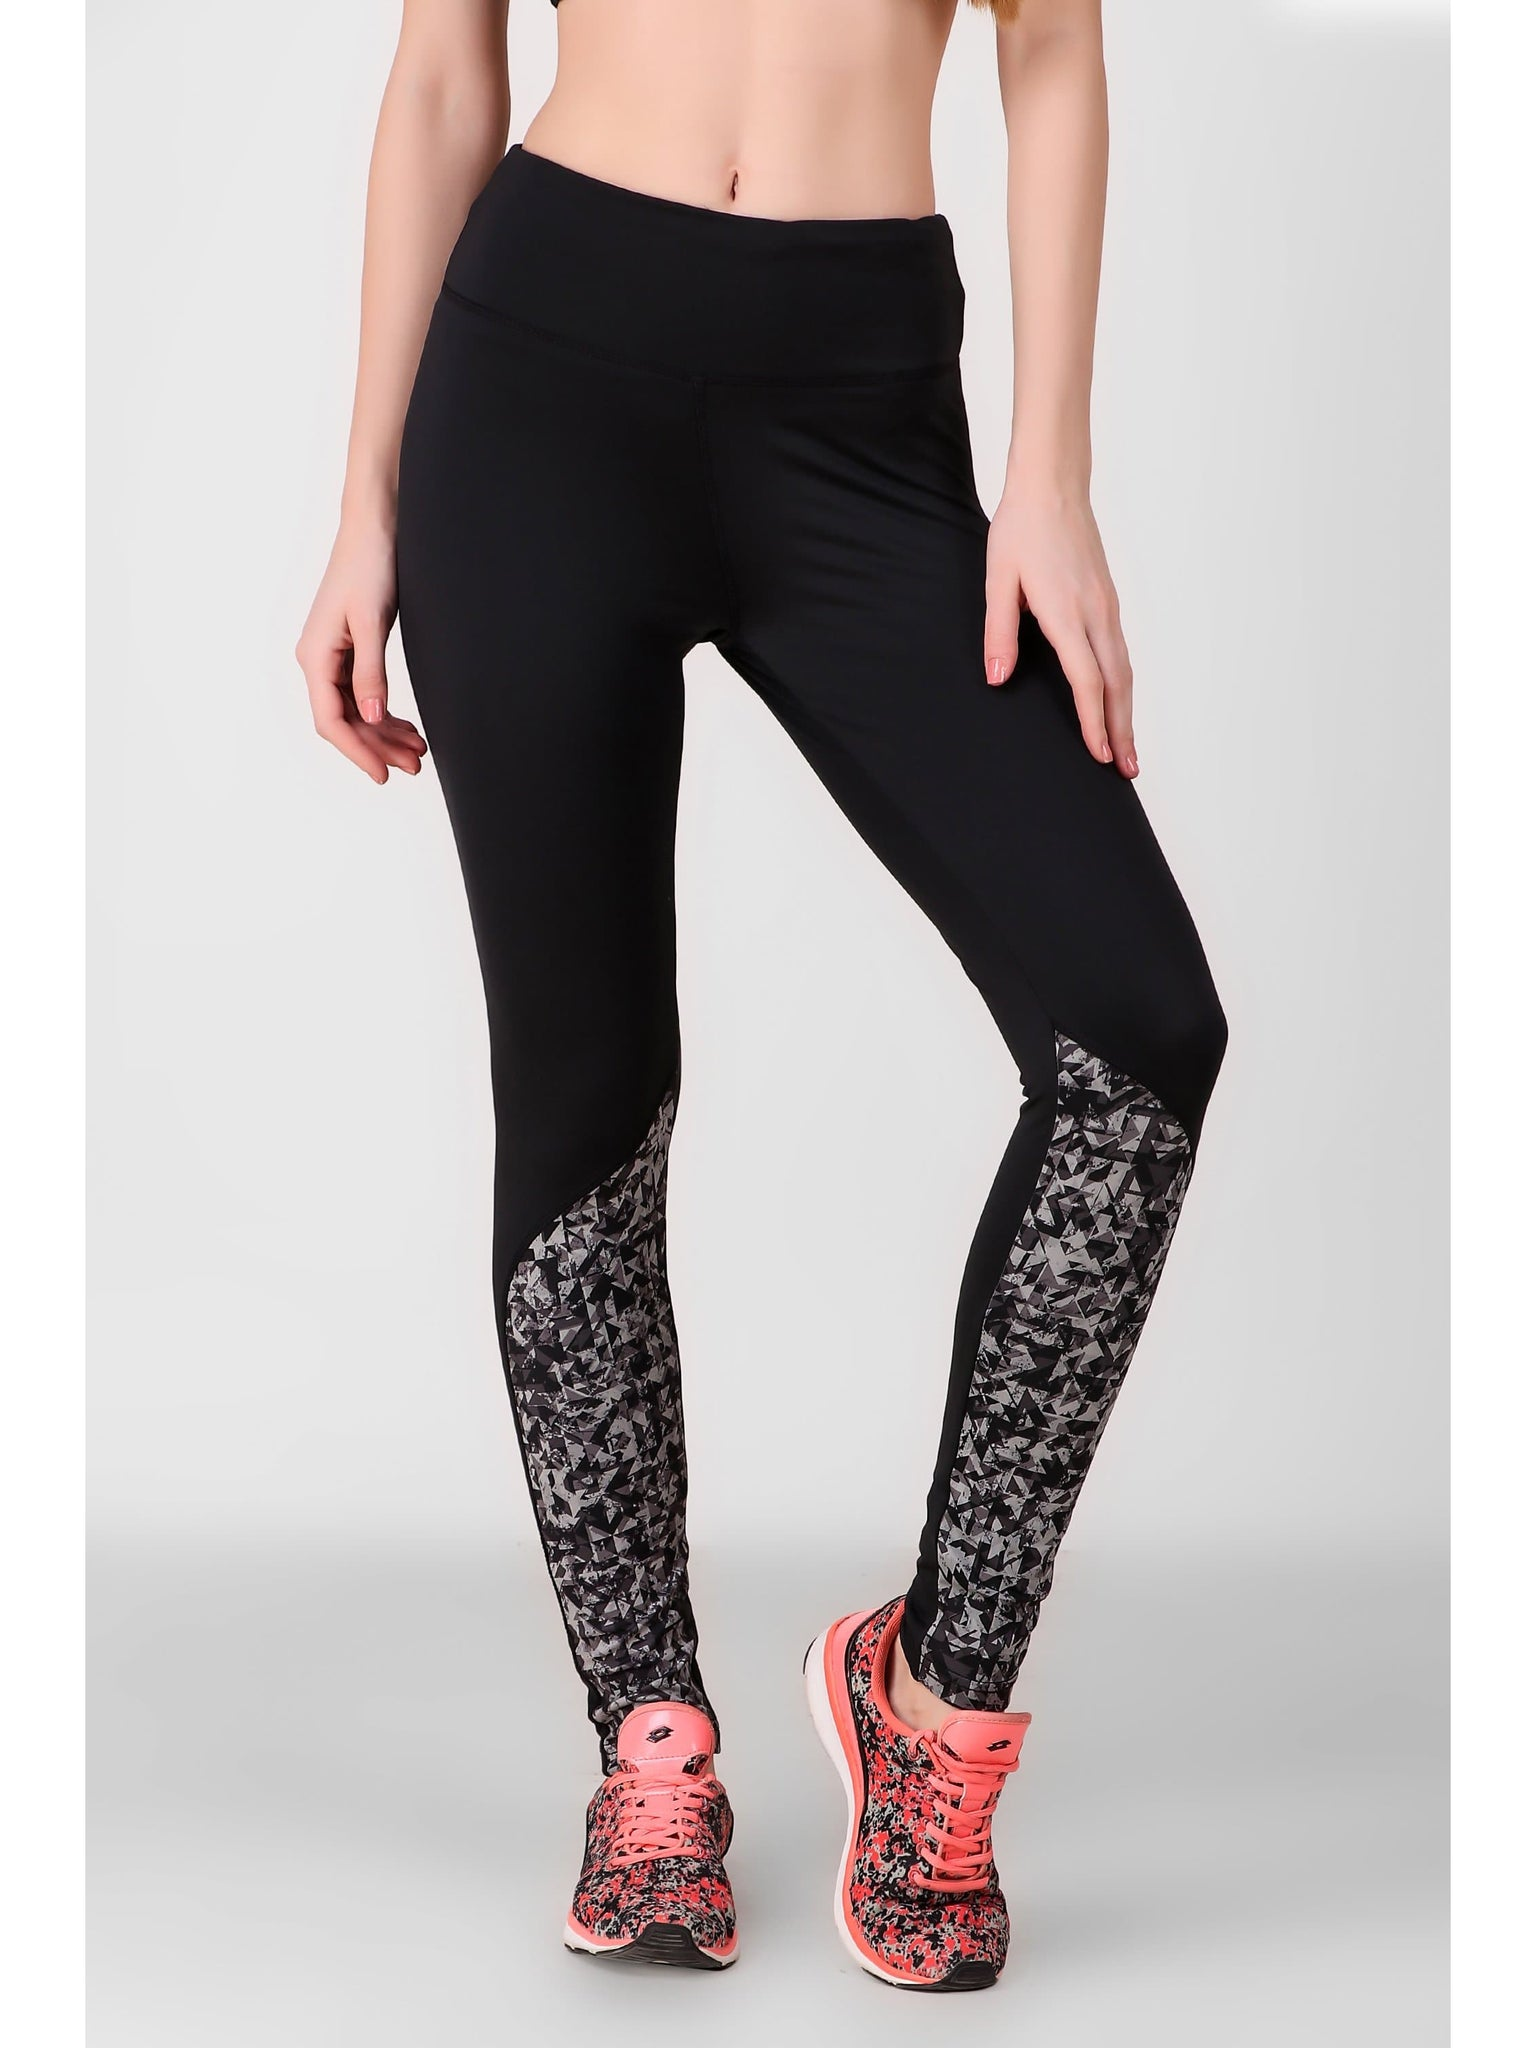 Print Block Black Leggings-02